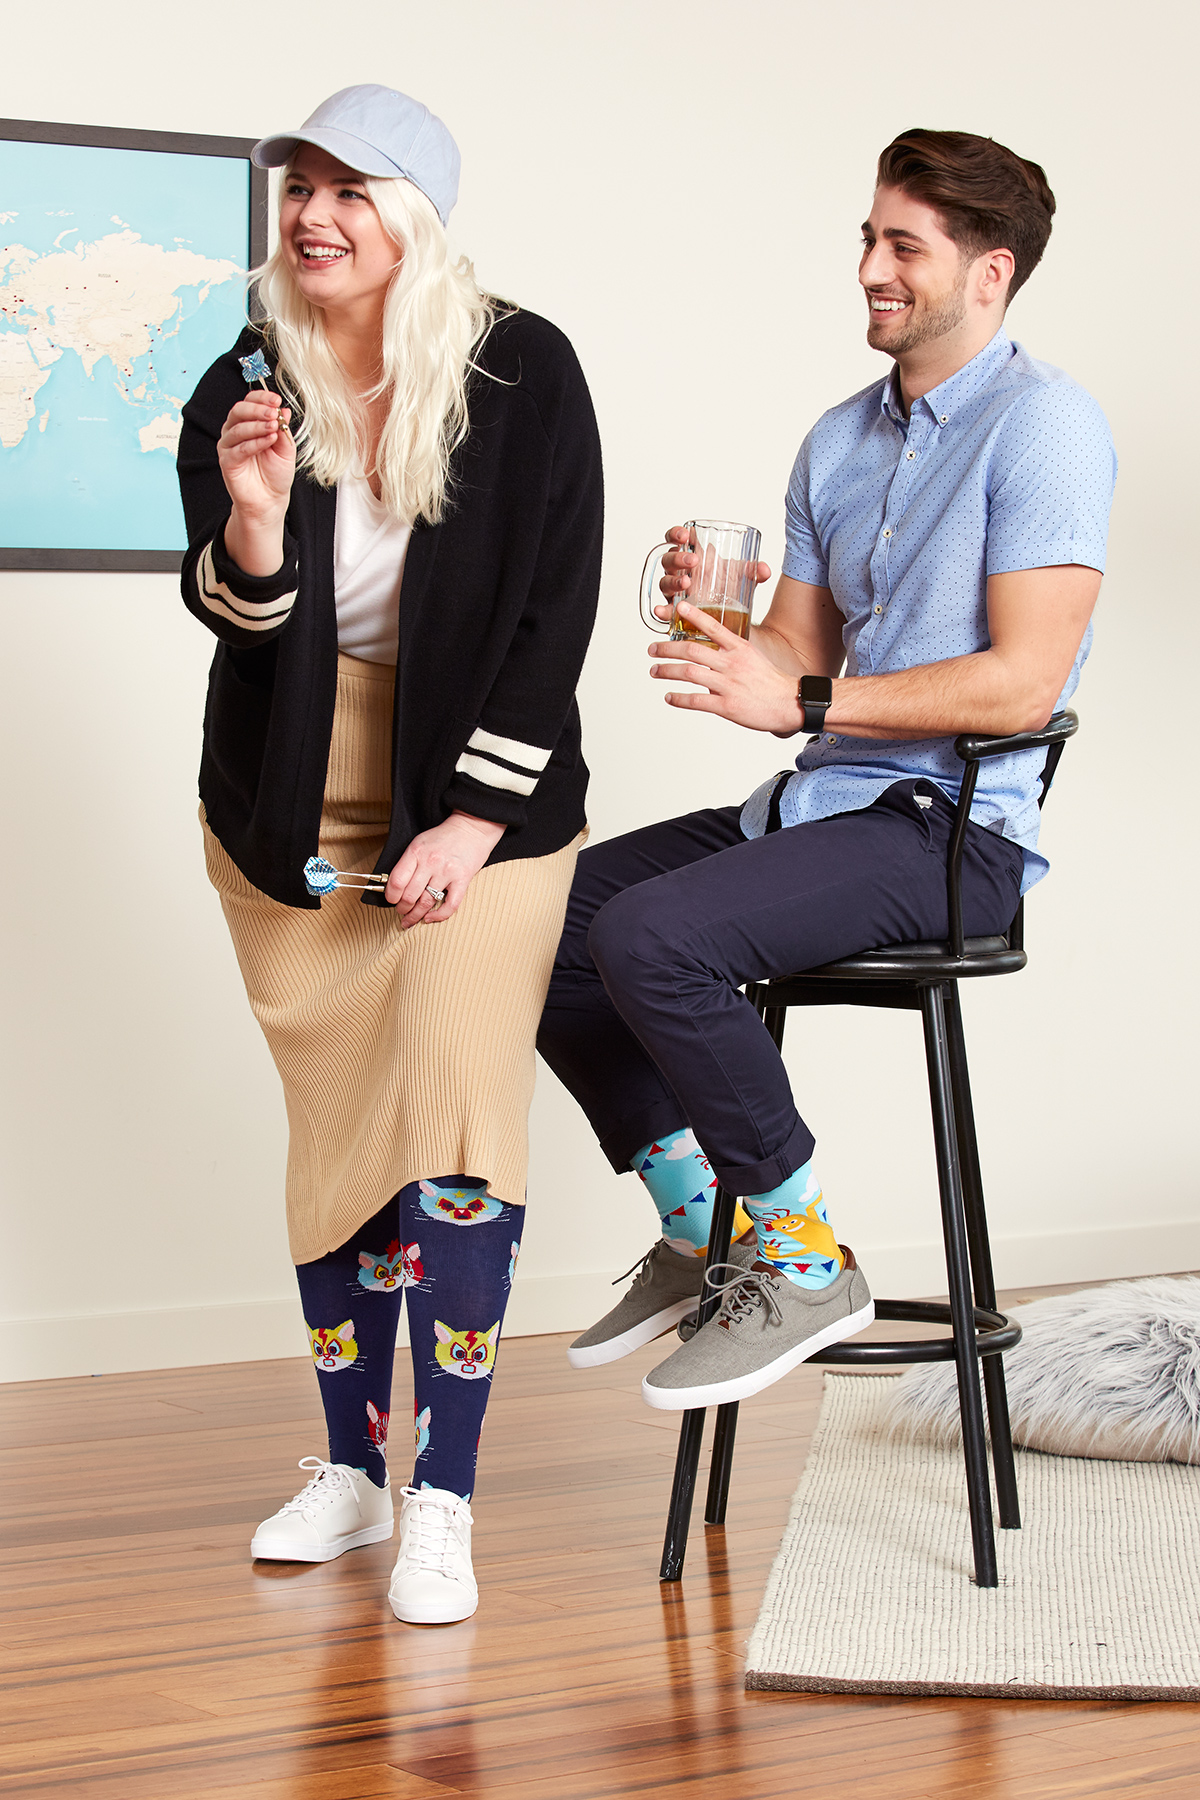 Gato Libre STRETCH-IT™ Knee High Sock for Men and Women S0051, The Ecstasy of Mr. Wavy Arms Crew Sock for Men MEF0273